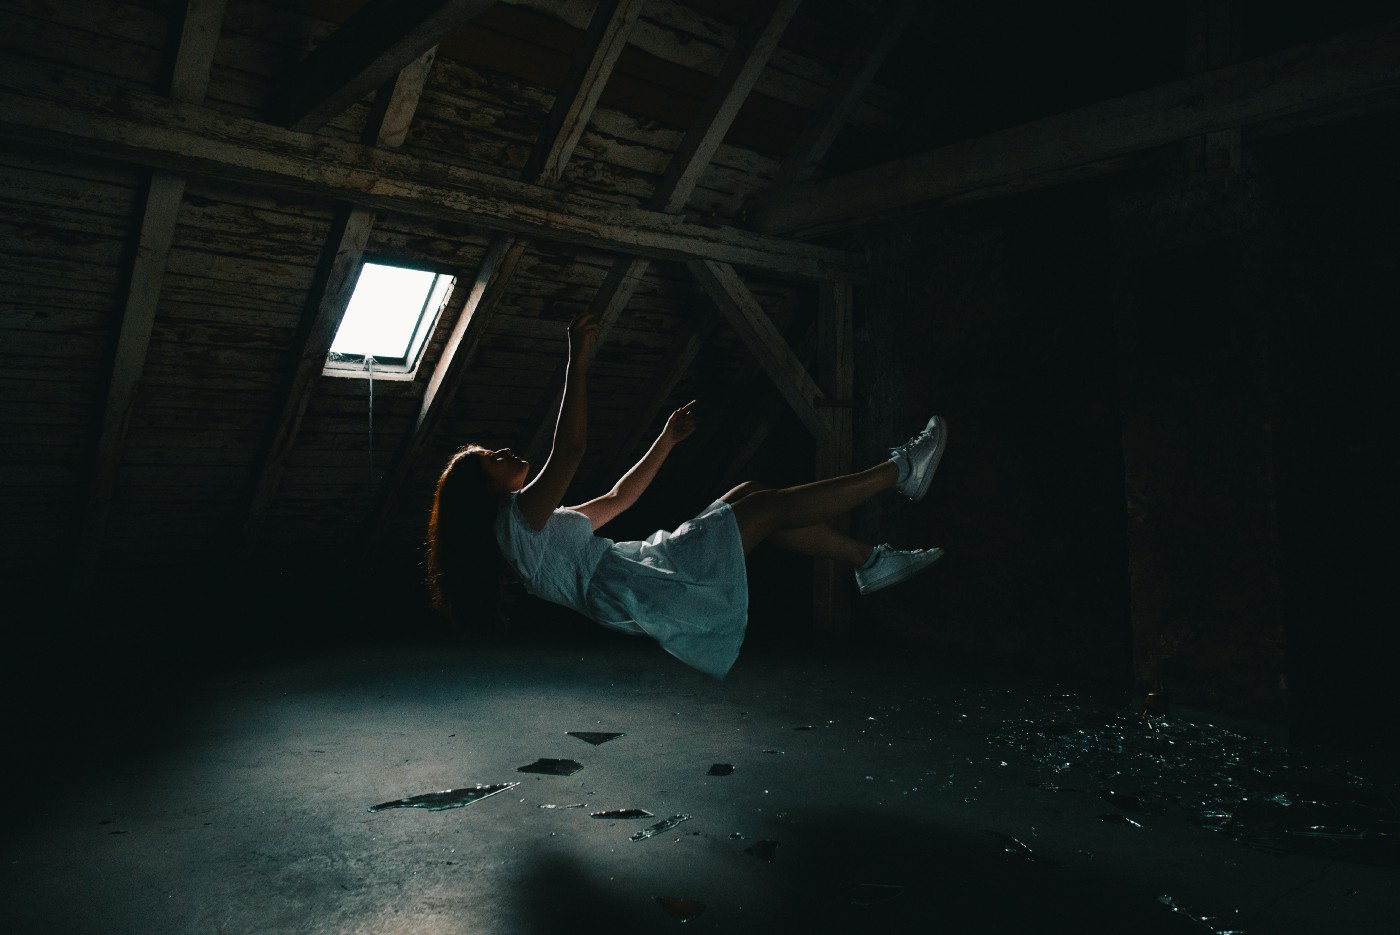 A 'trippy' capture of a woman falling backwards, but at the same time, seemingly floating in the air with a quality of otherworldliness.